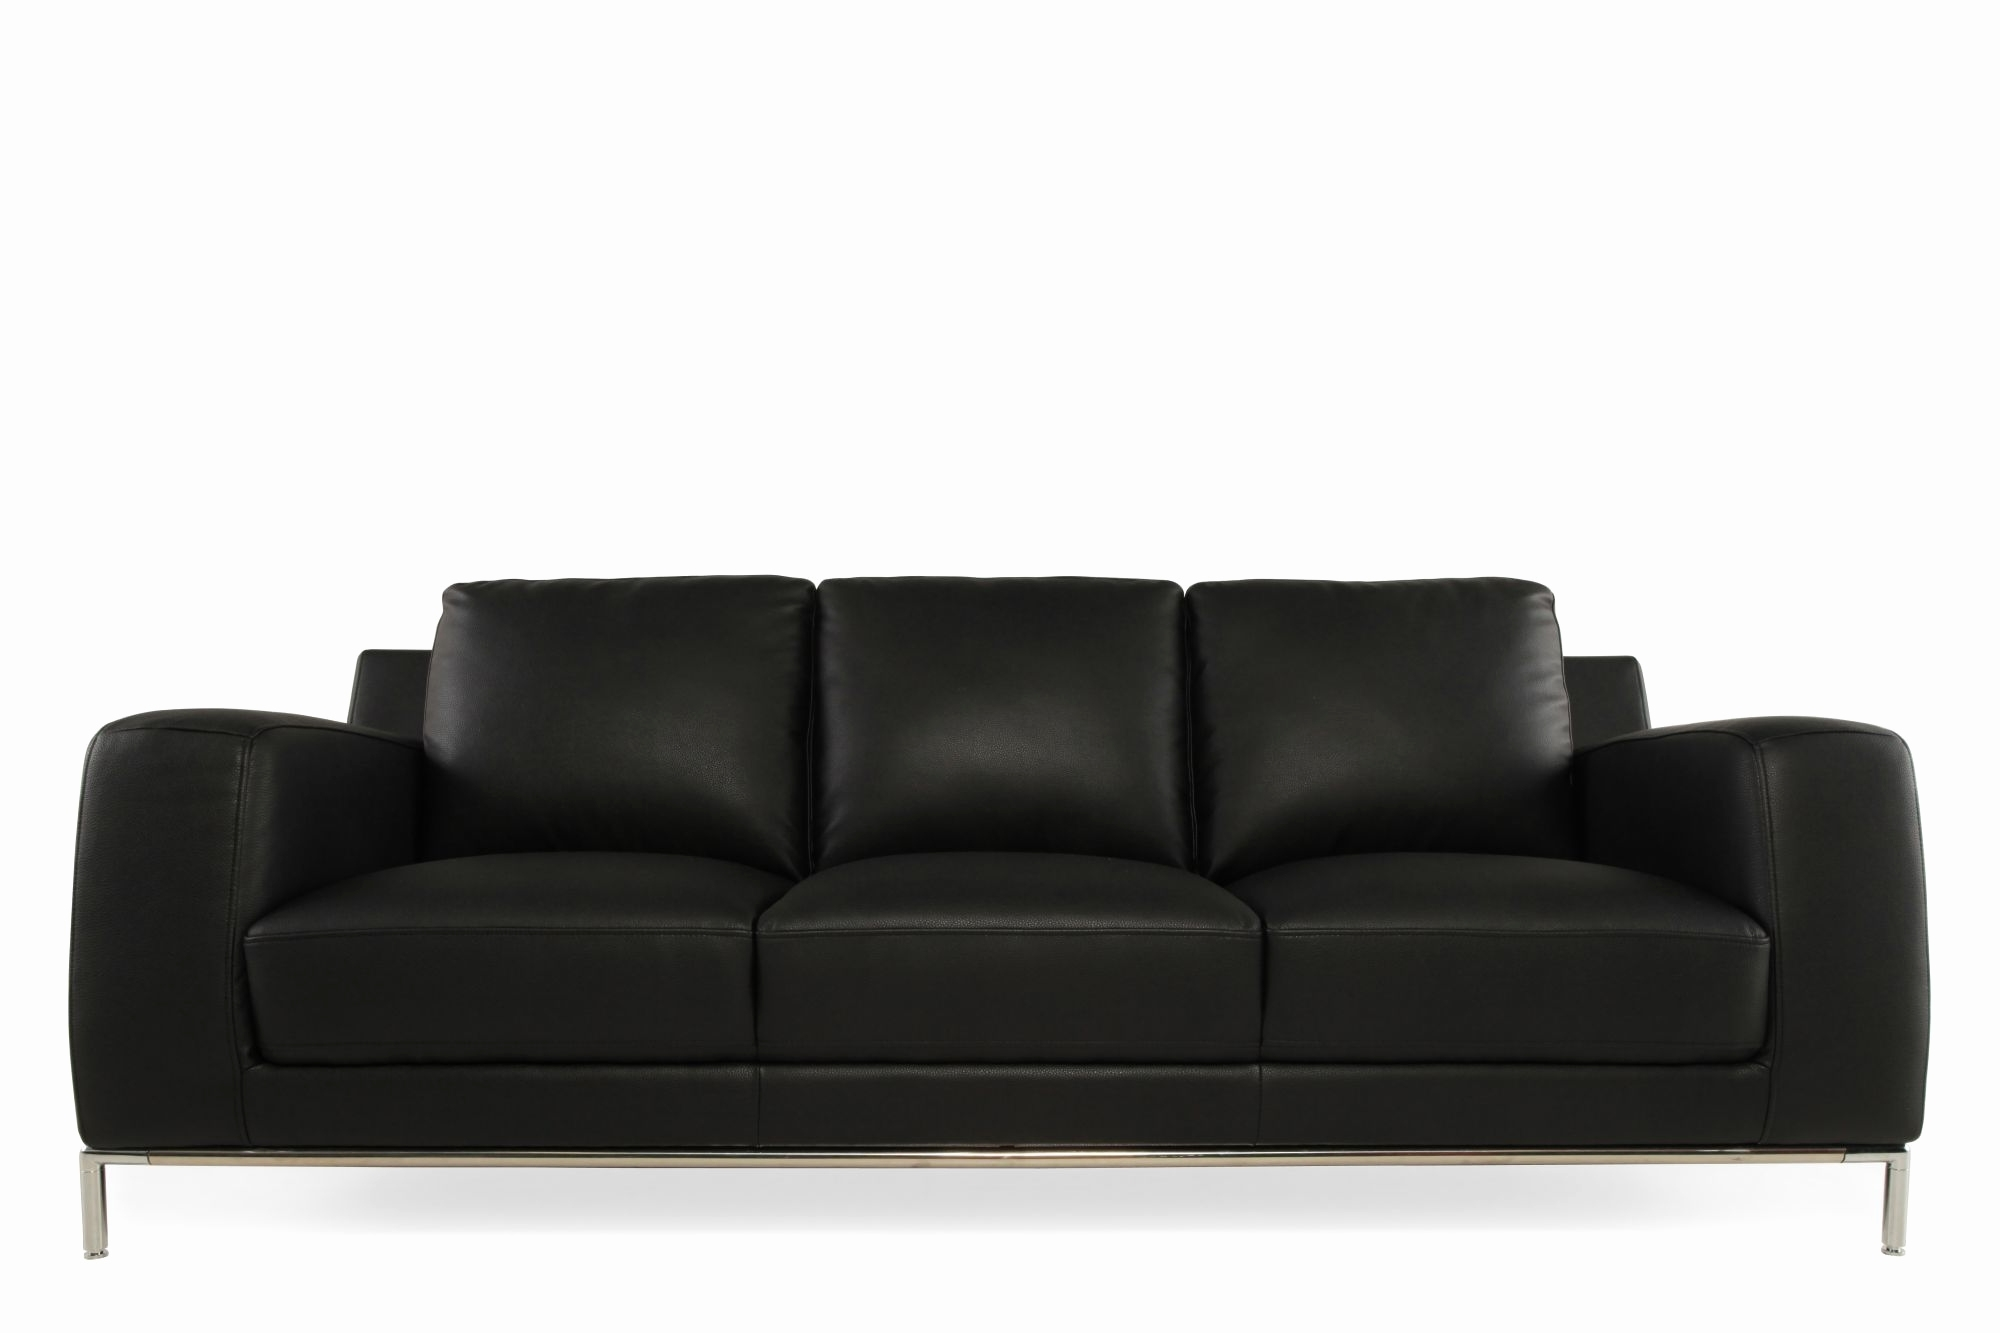 Fashionable Sofas : Akhtar Furniture Sofa Jeromes Sofas Ashley Furniture Couch Pertaining To Mathis Brothers Sectional Sofas (View 18 of 20)